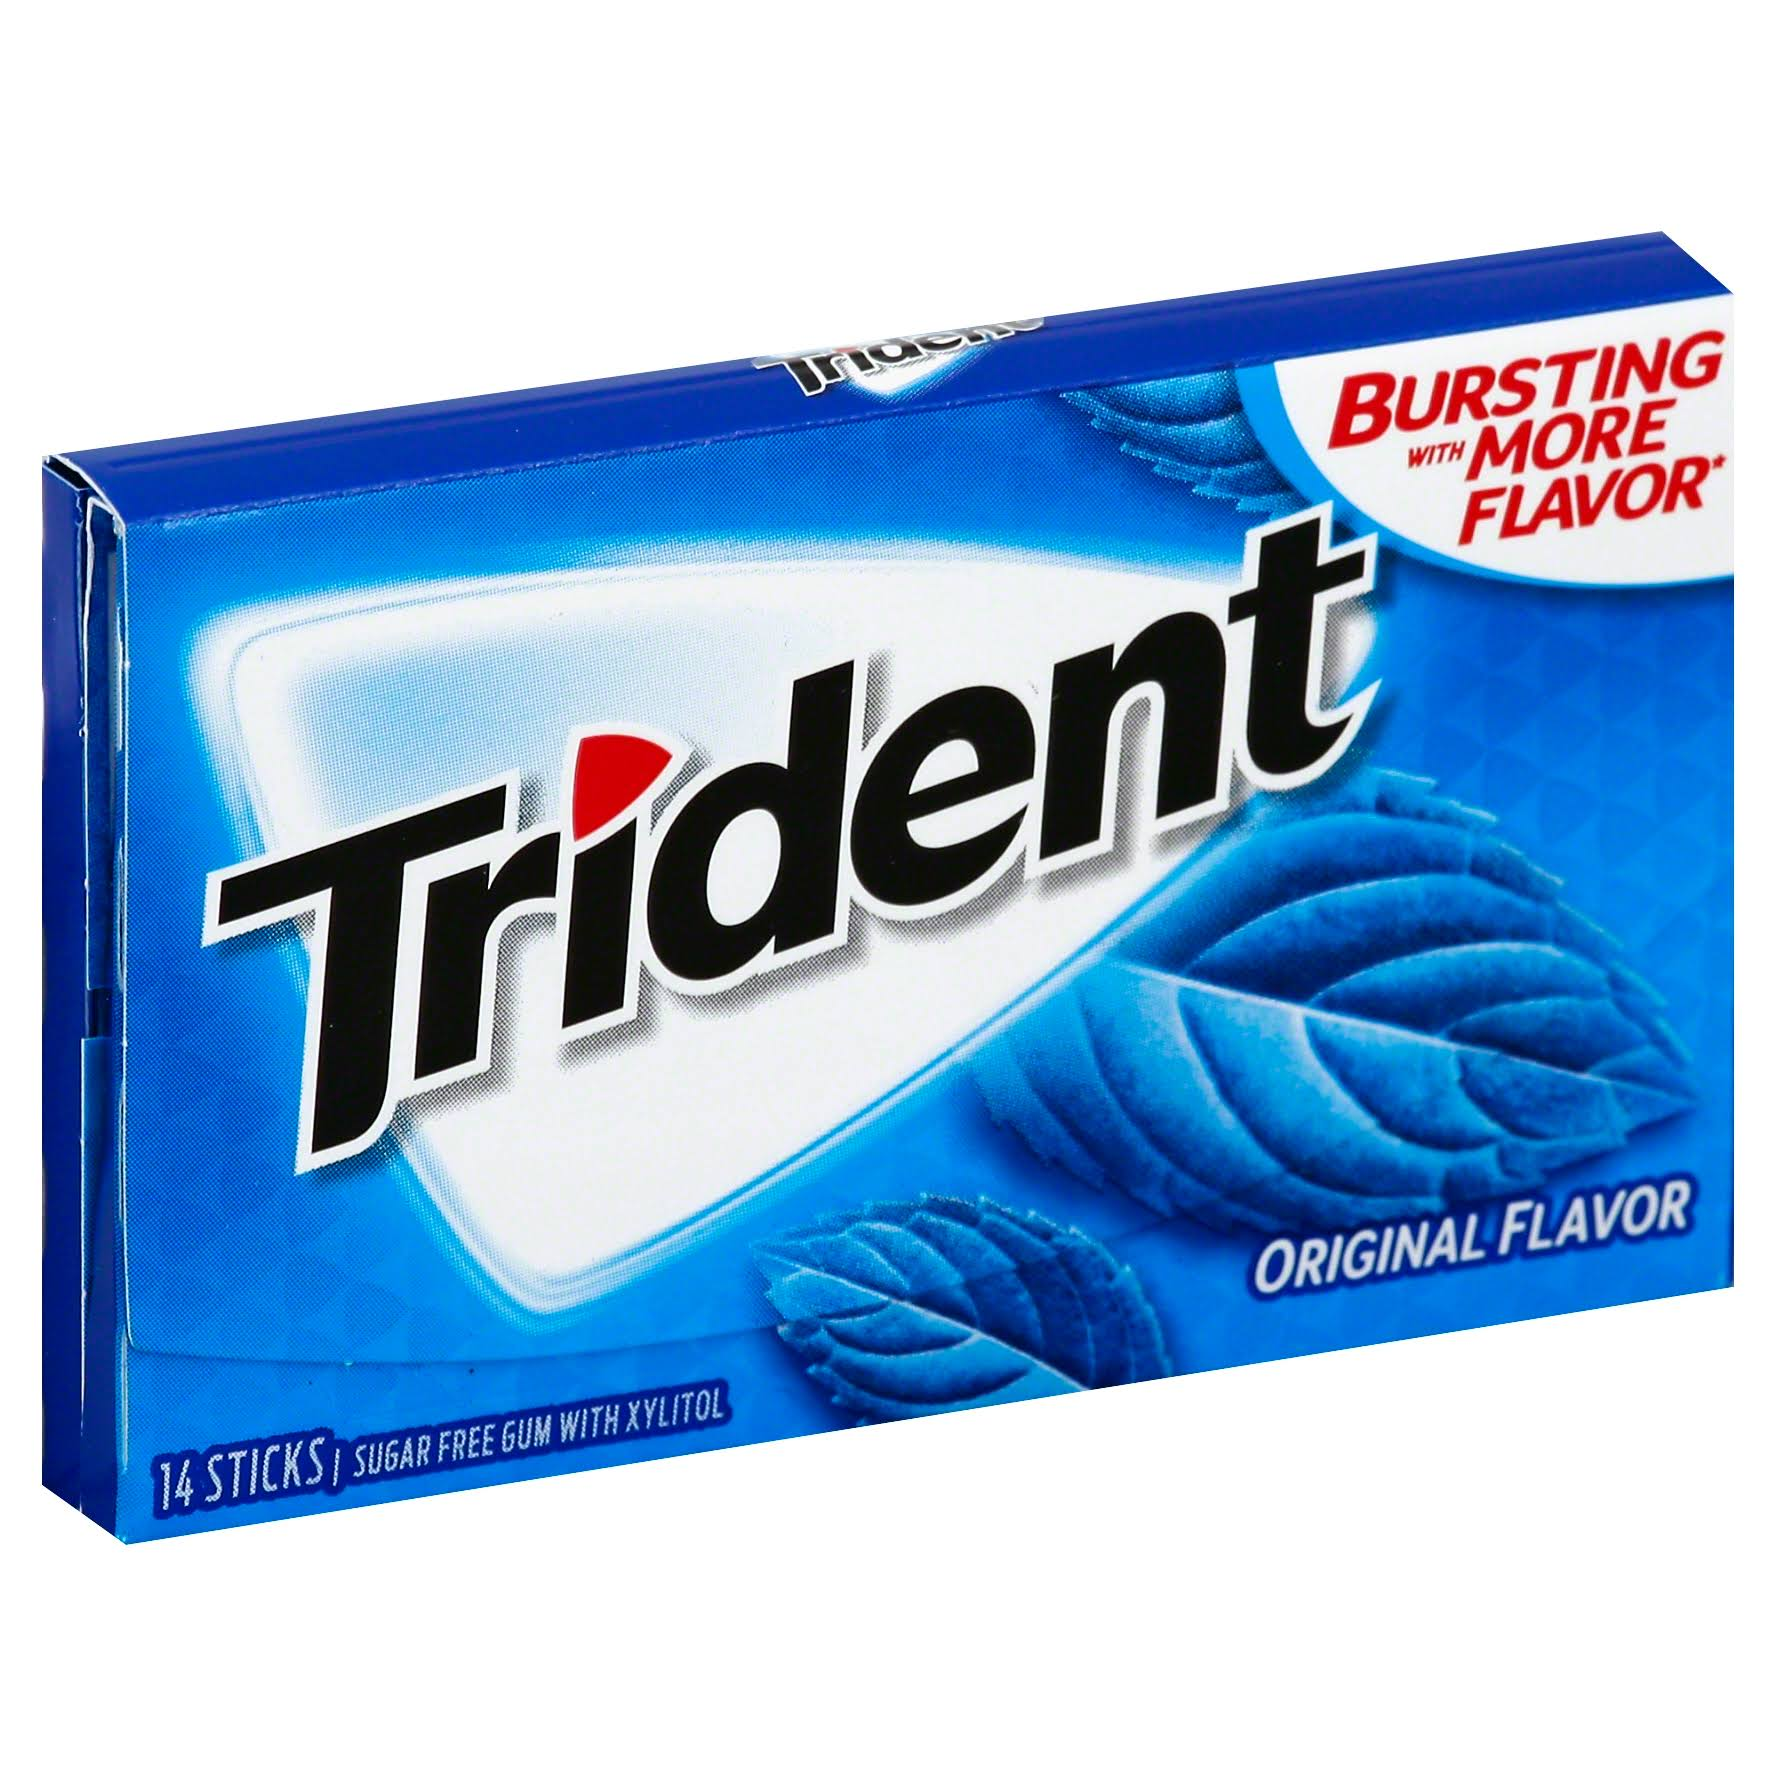 Trident Original Sugar Free Gum - Original, 14 Sticks, 0.95oz